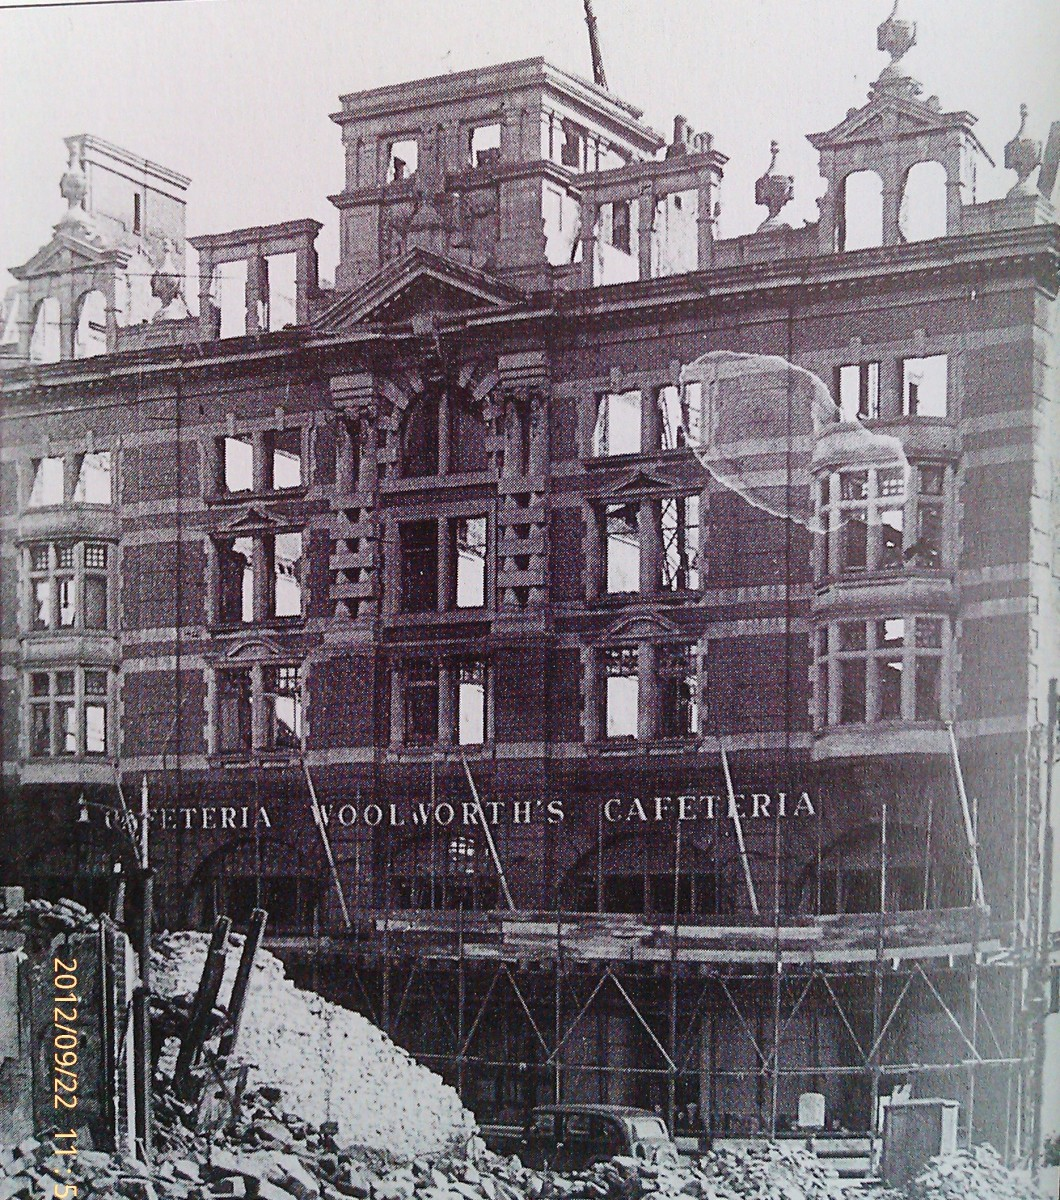 a very badly damaged Woolworths Store in Swansea's High Street following the Blitz of the town.